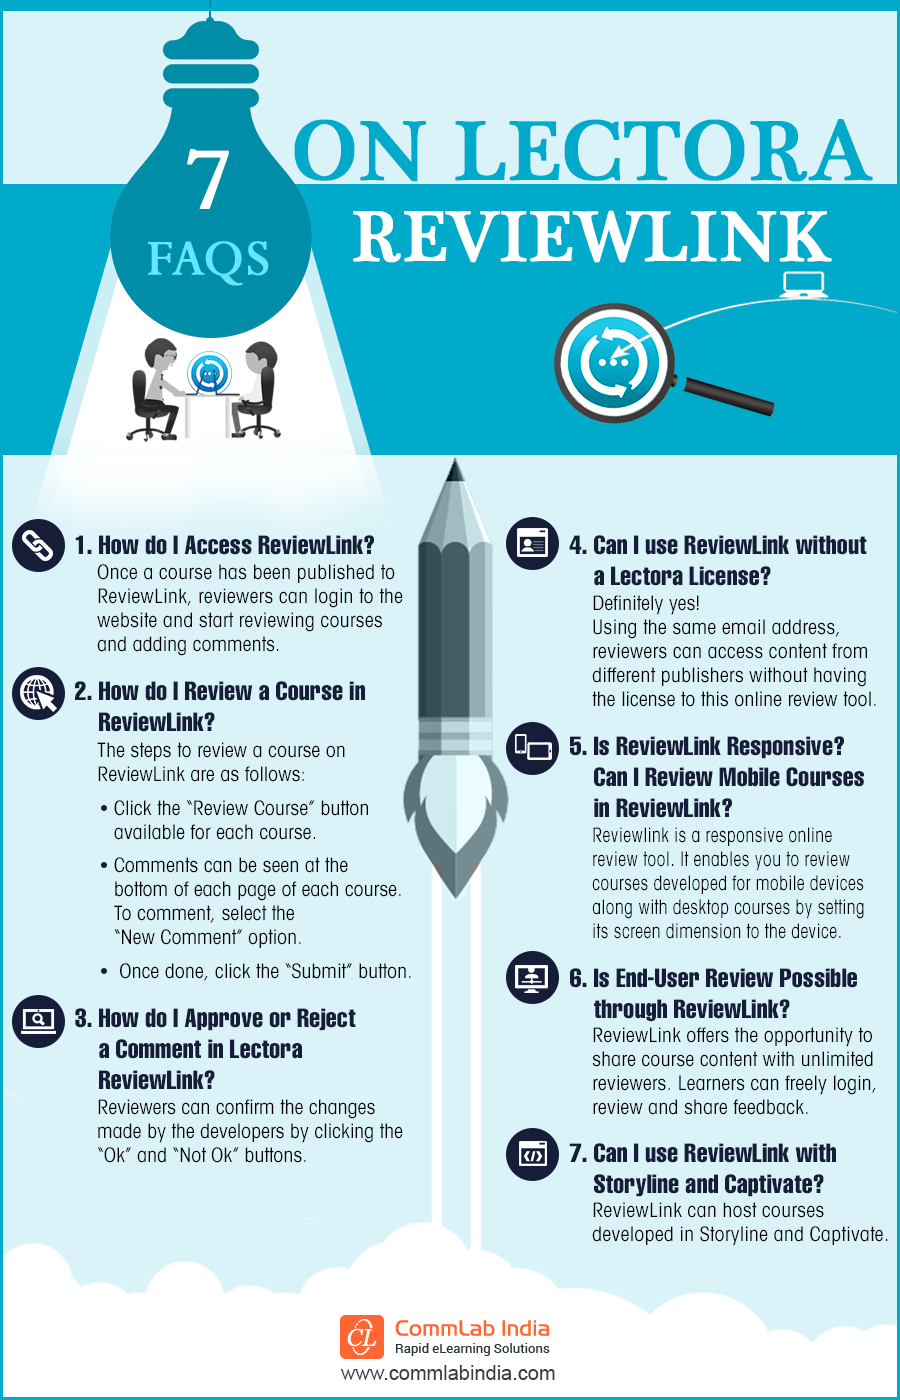 Using Lectora ReviewLink for eLearning Development: 7 FAQs Answered [Infographic]